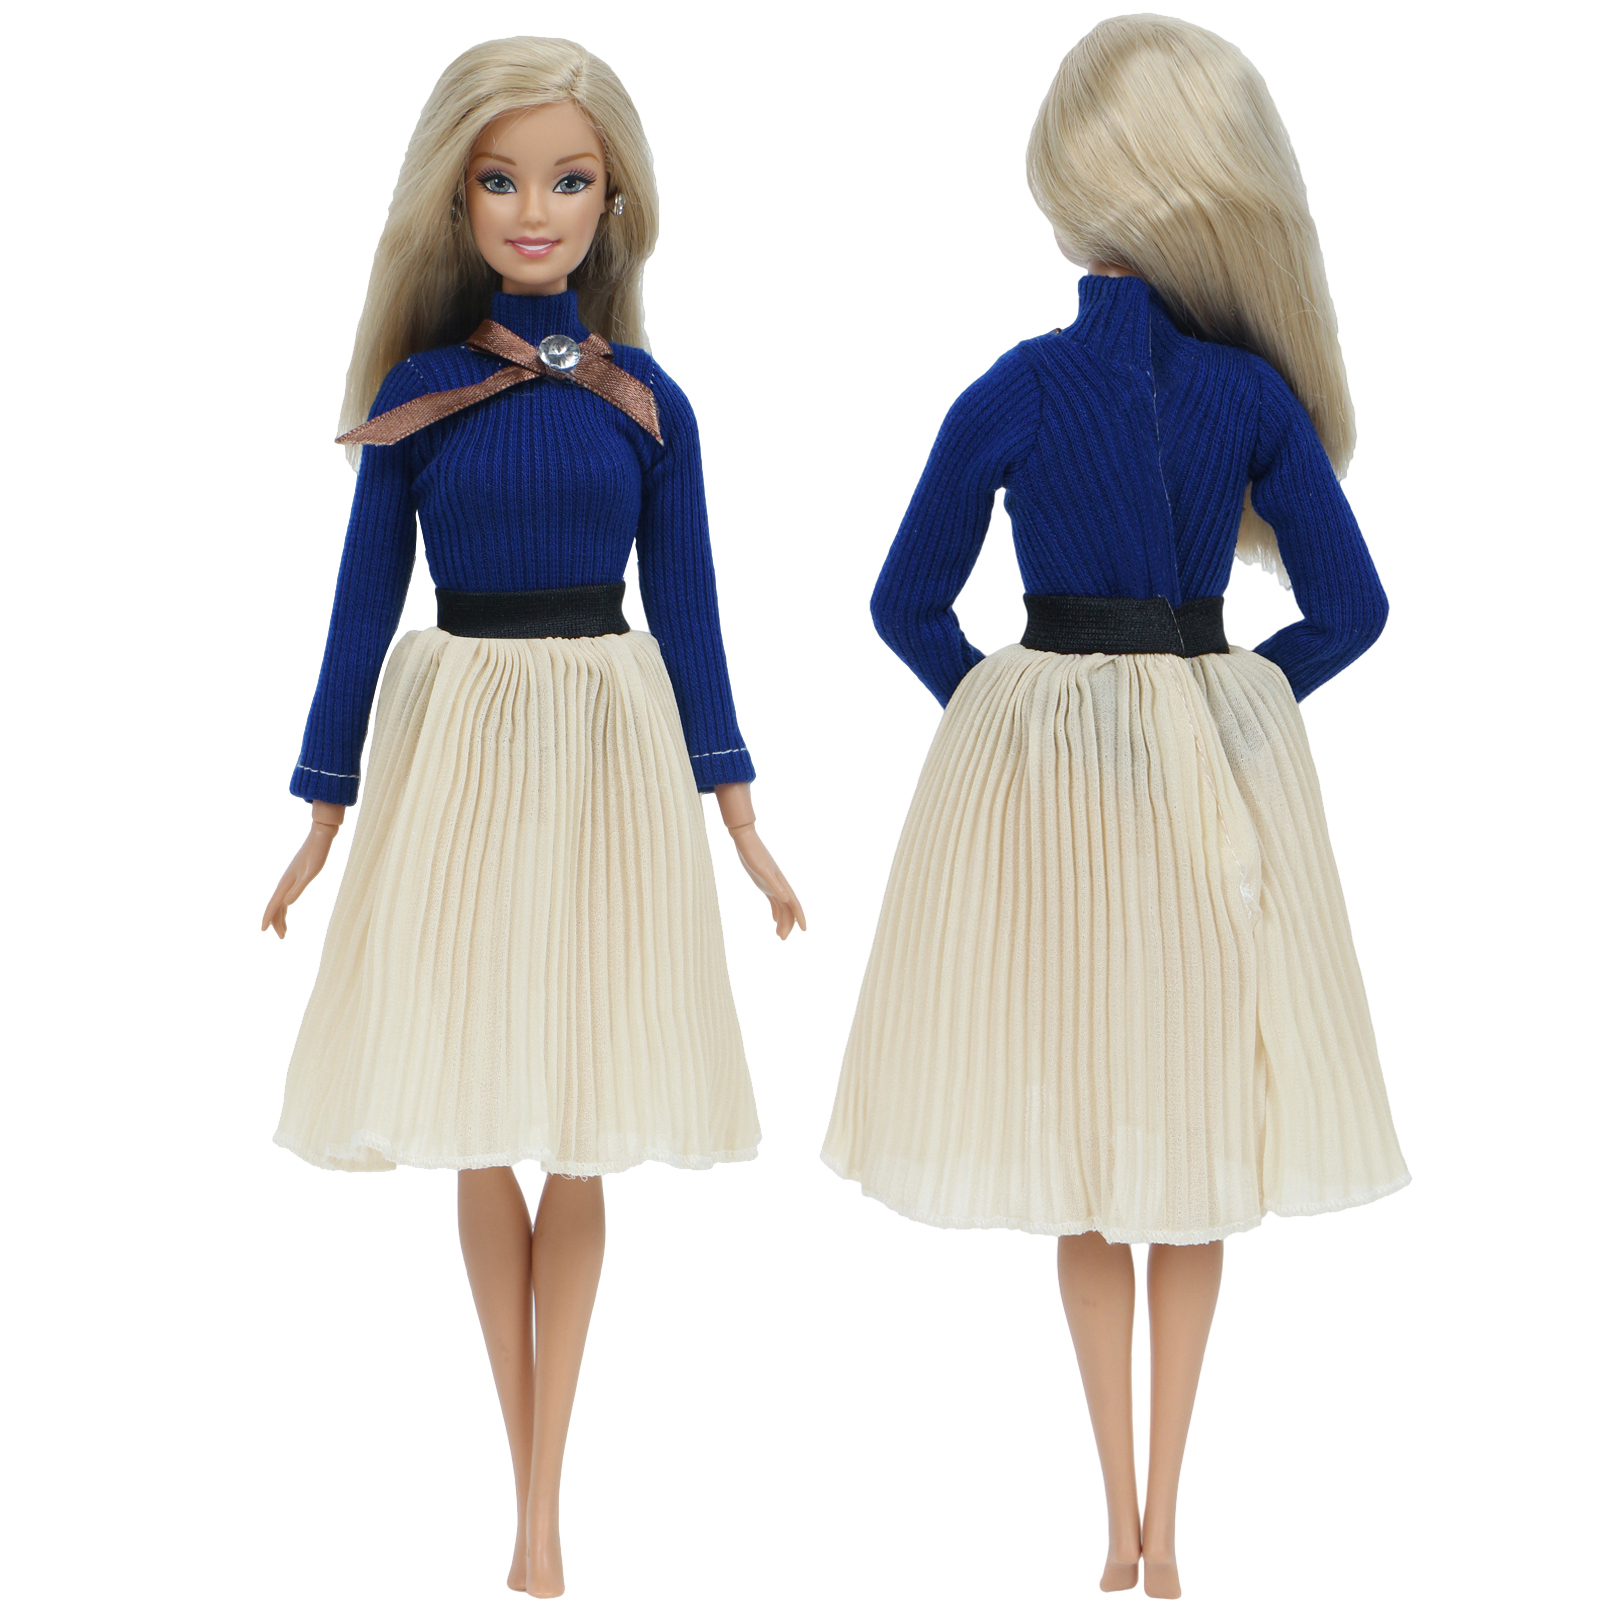 Fashion Handmade Doll Dress For Barbie Doll Blue Dating Wear Long Sleeves Blouse Pleated Skirt Outfit Doll Clothes Accessories